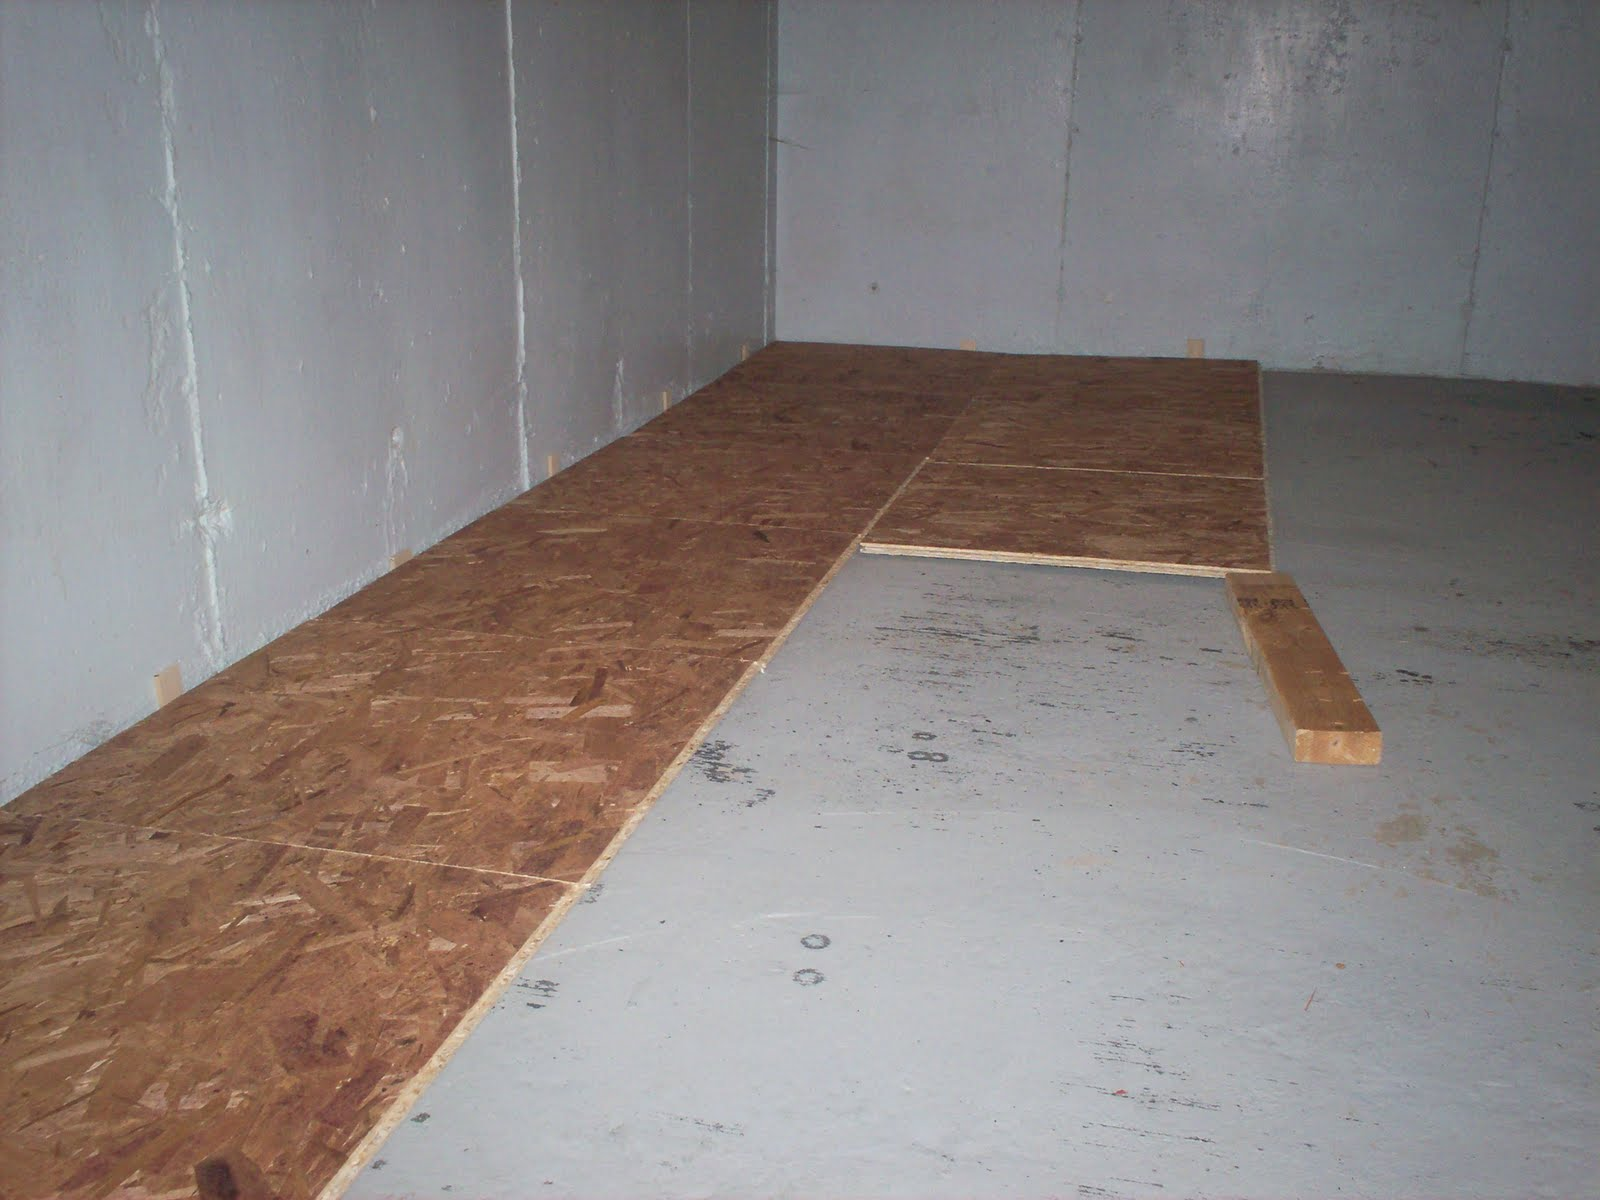 Tiling basement floor over concrete